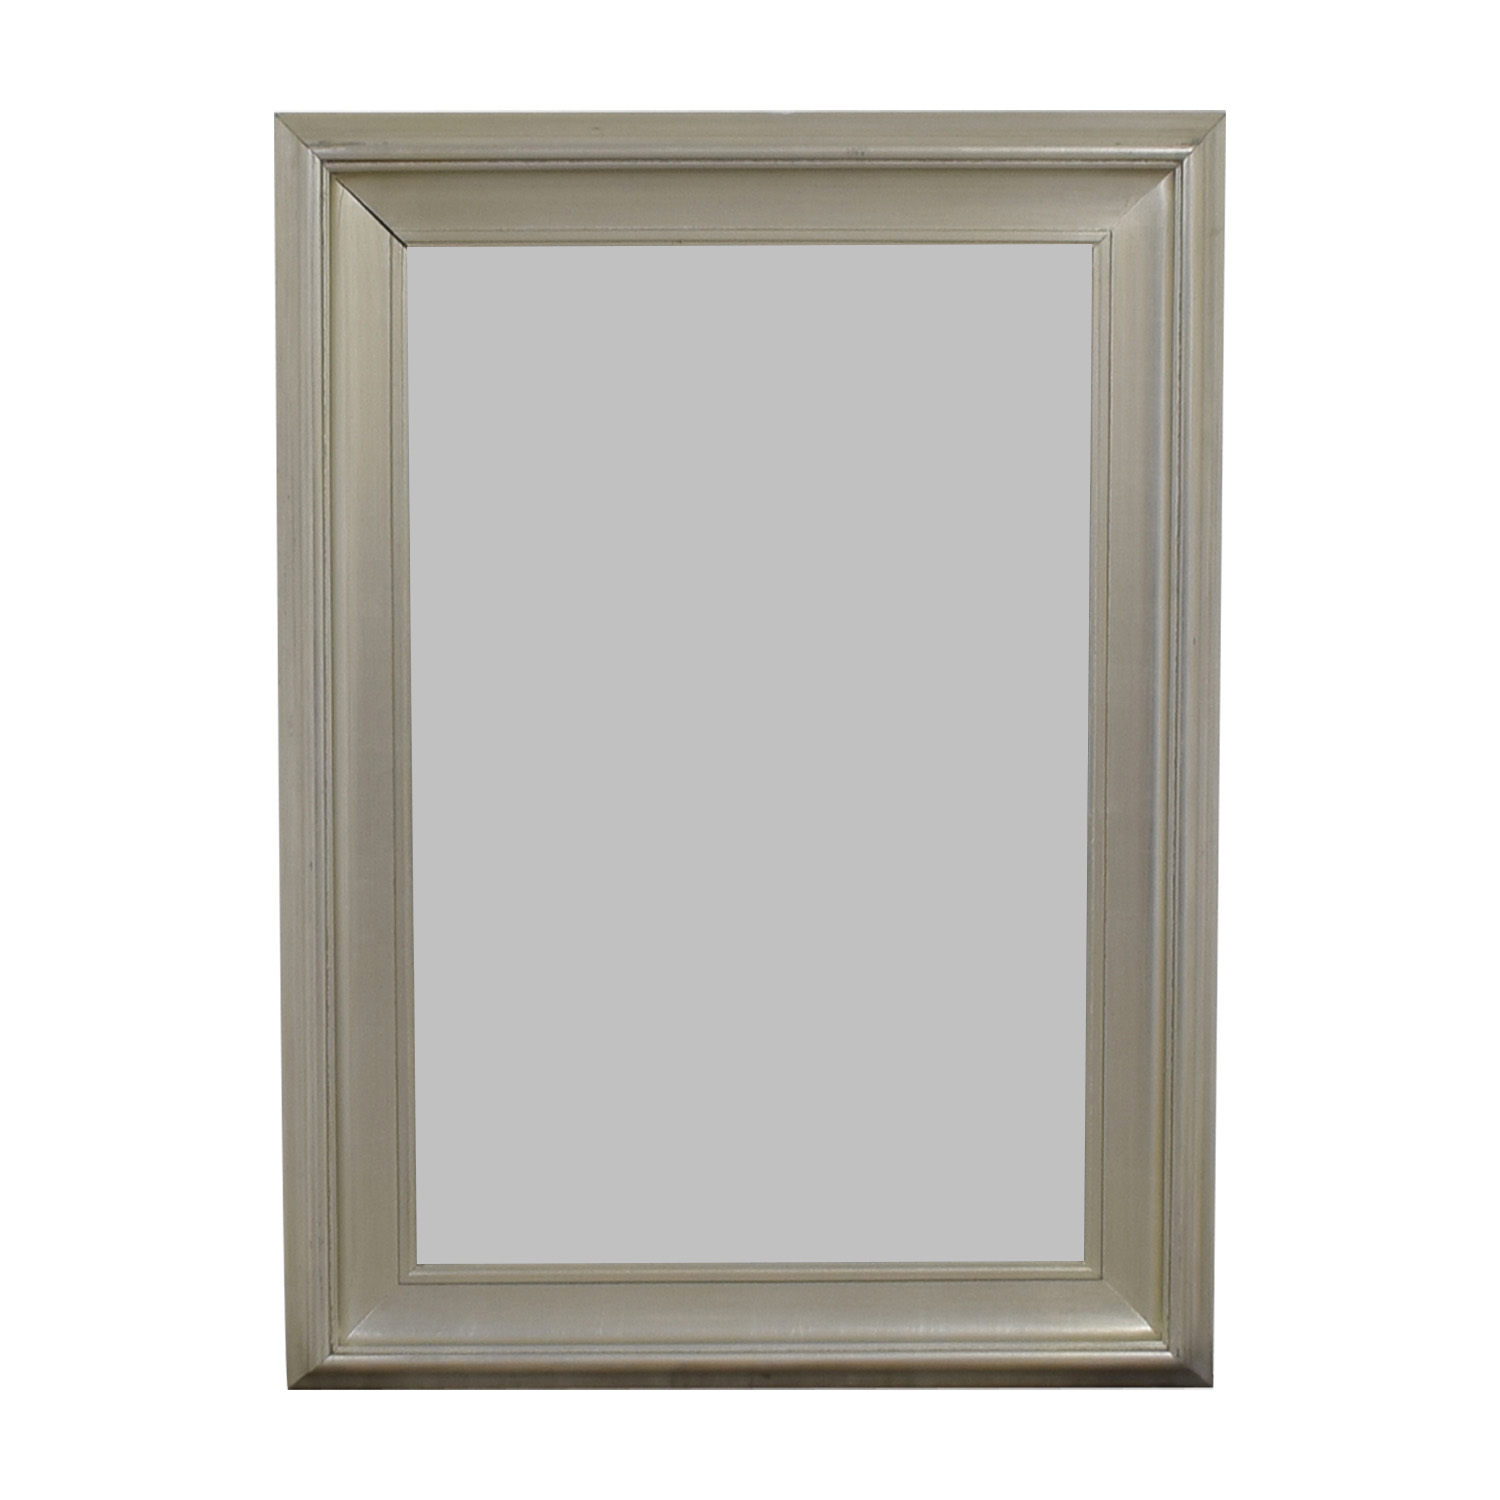 buy Pottery Barn Pottery Barn Distressed Antique Finish Mirror online